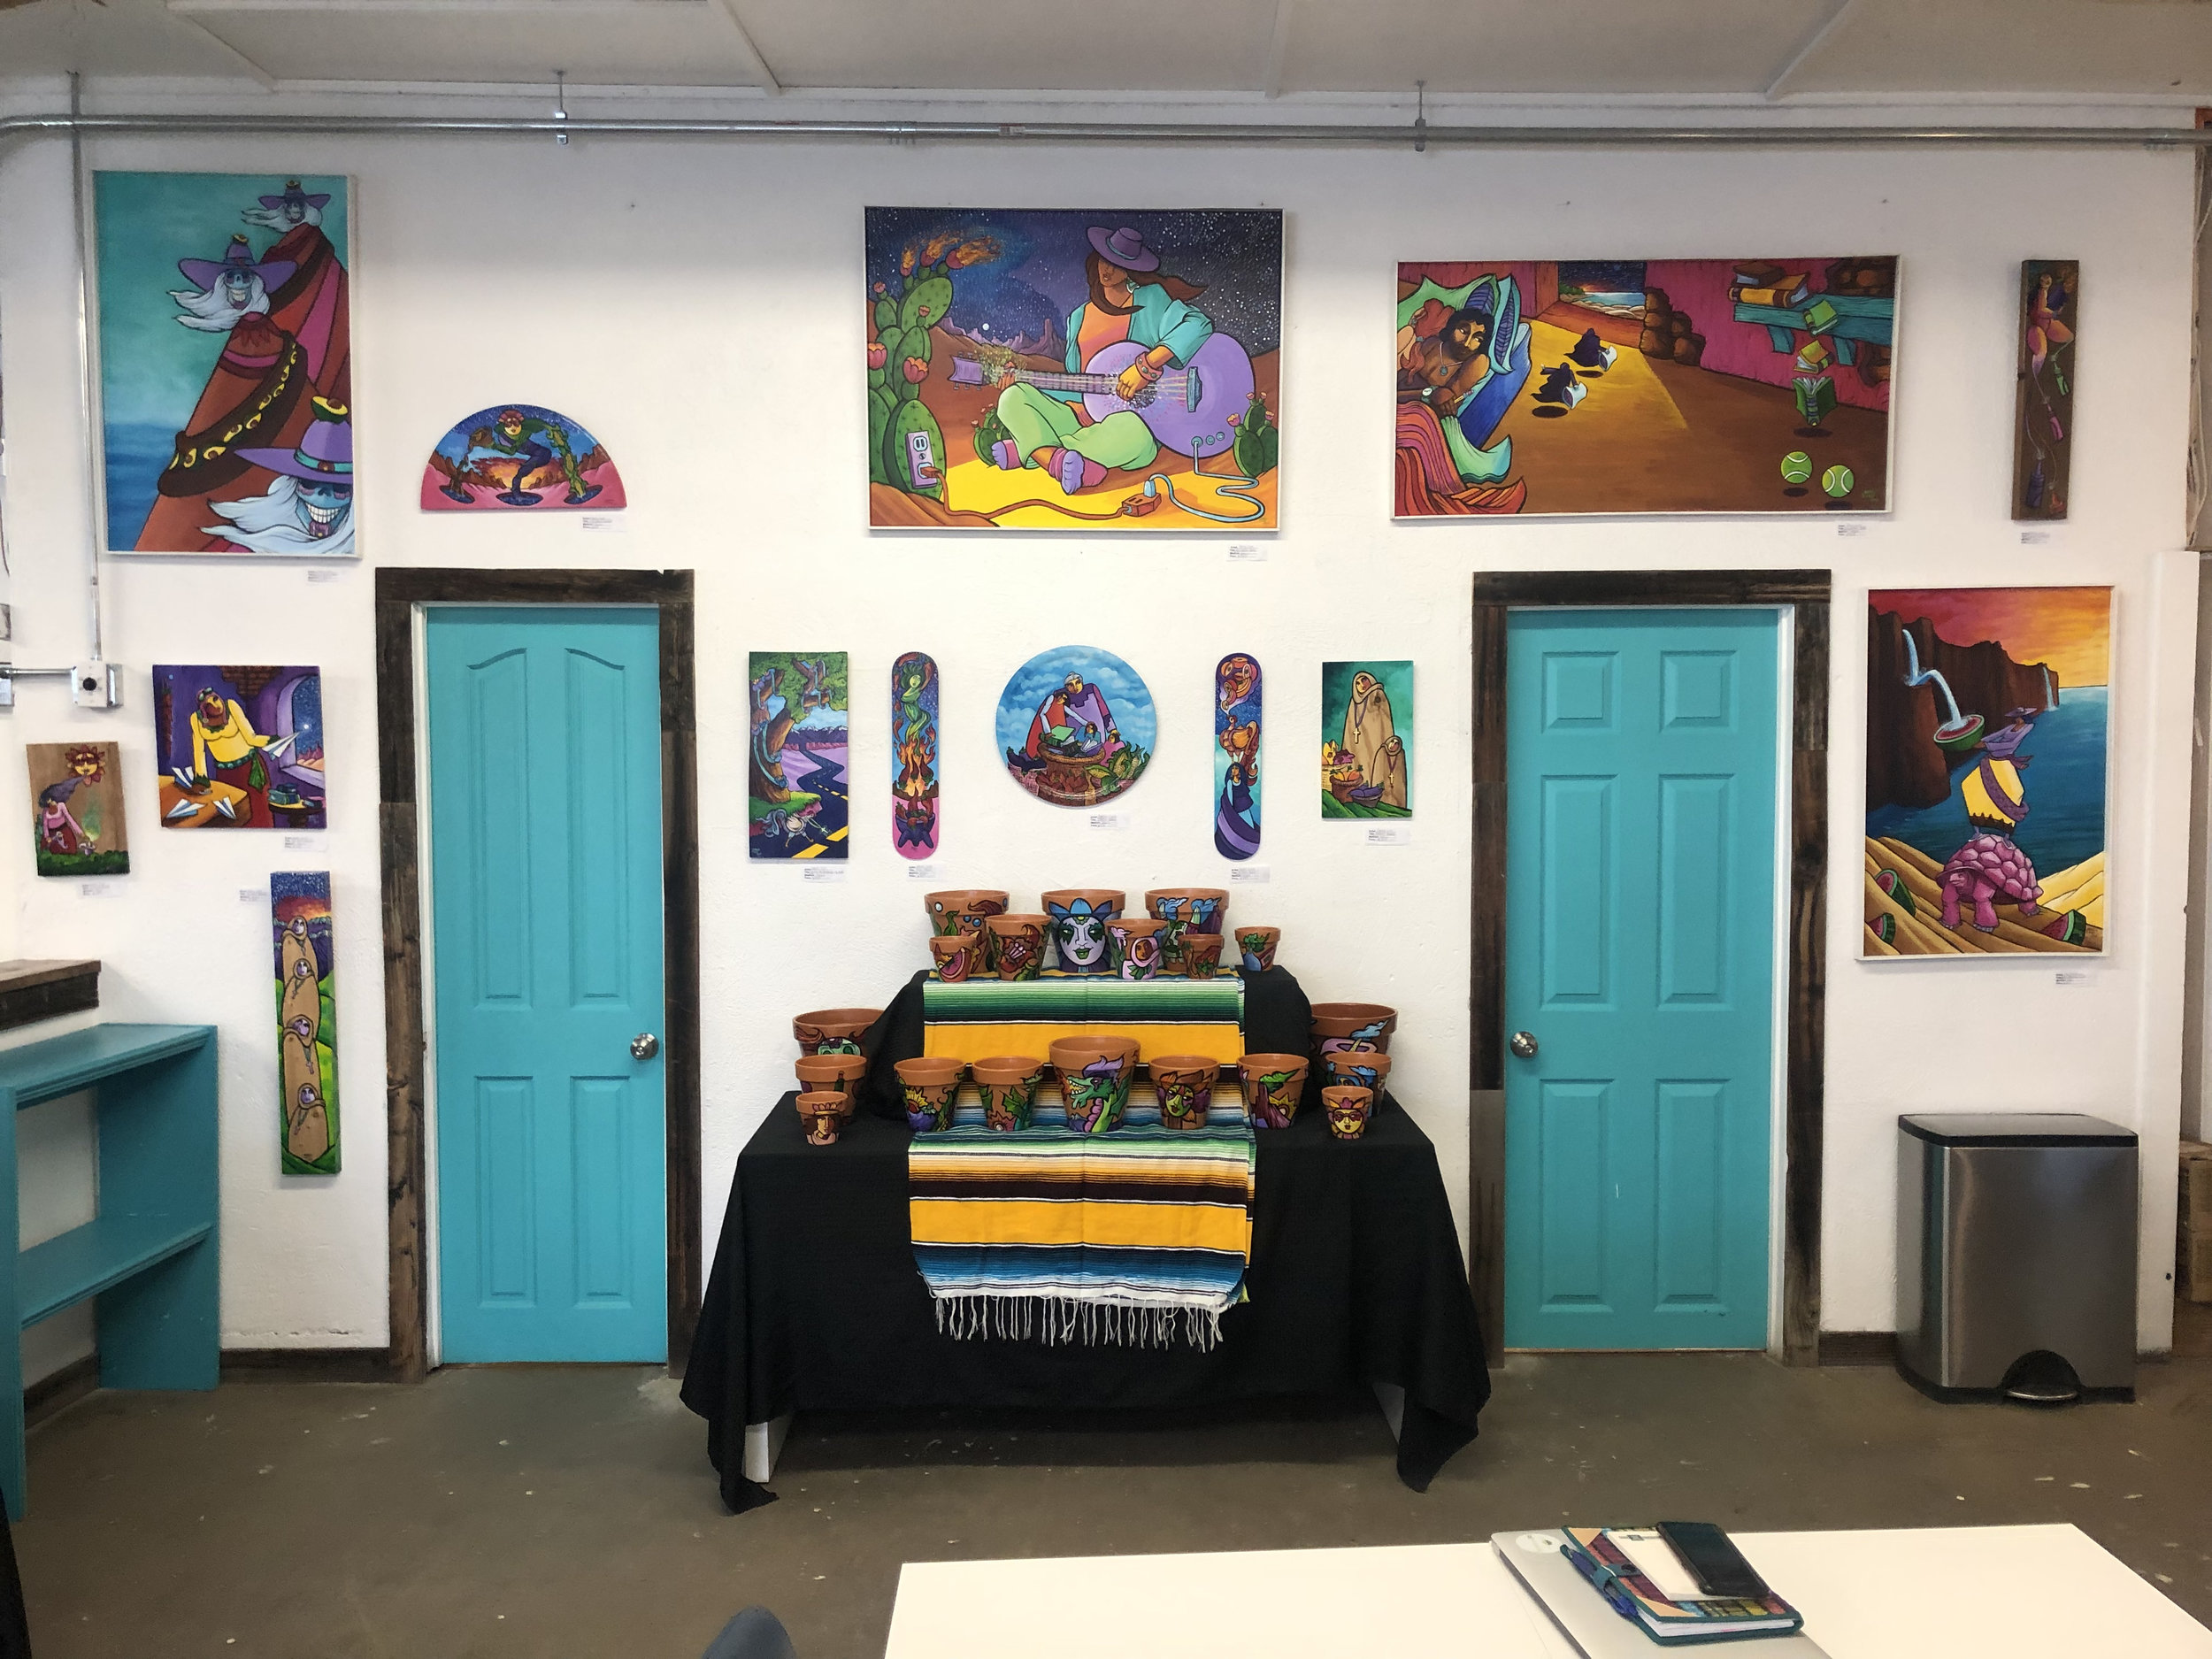 Westwood Food Cooperative / Re:Vision's Office space transformed by Daniel Luna's vibrant pieces